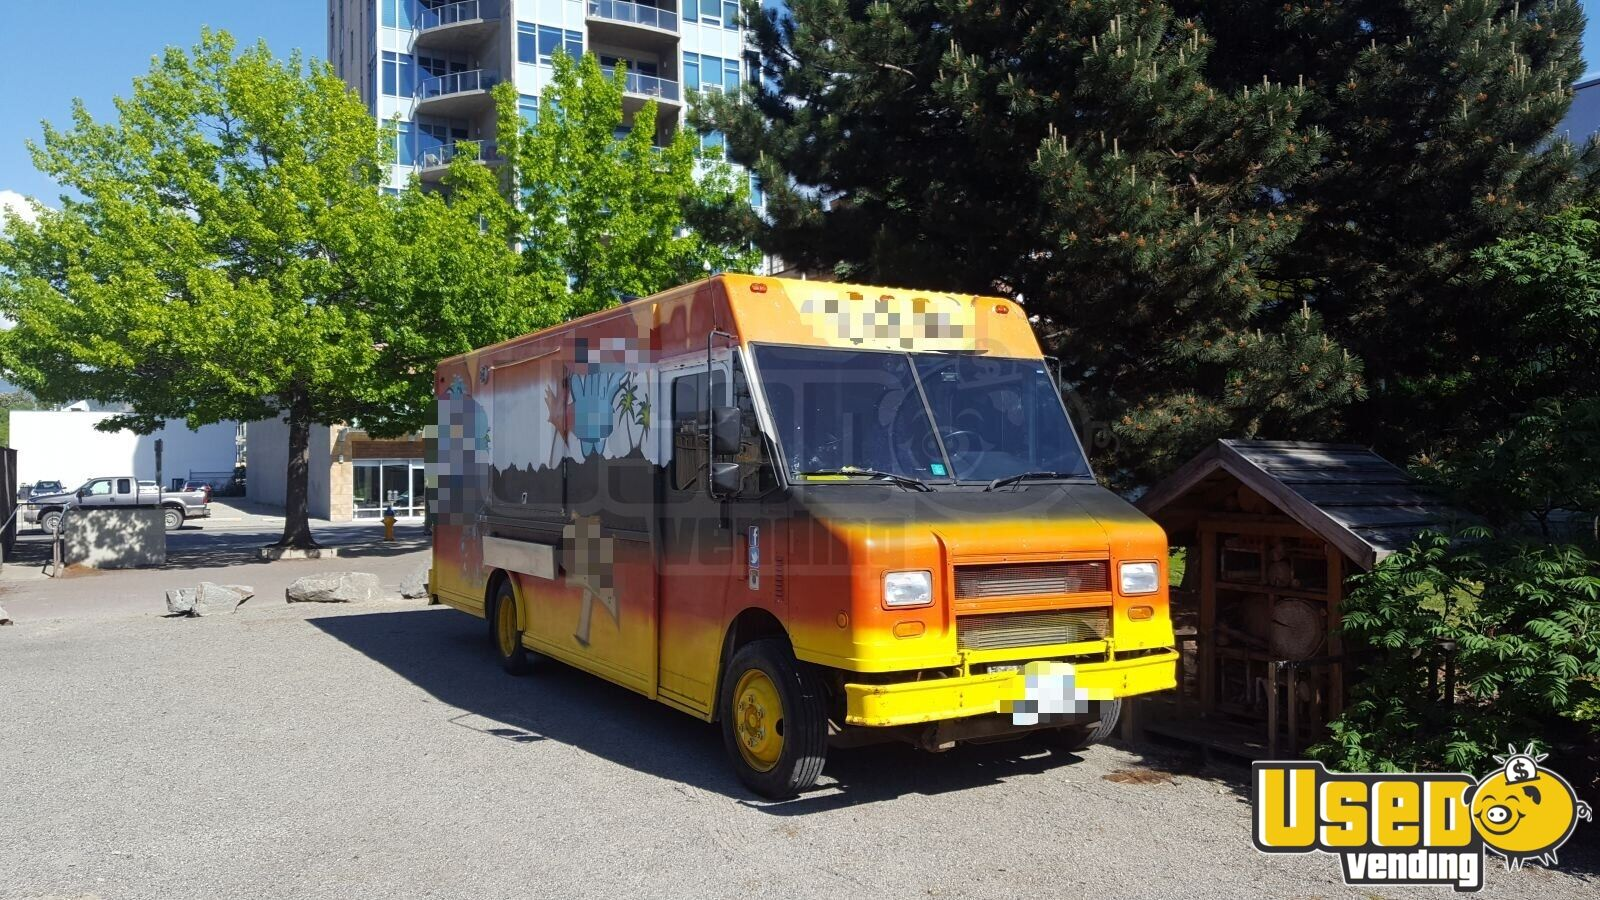 2001 Freightliner All-purpose Food Truck Backup Camera British Columbia Diesel Engine for Sale - 8